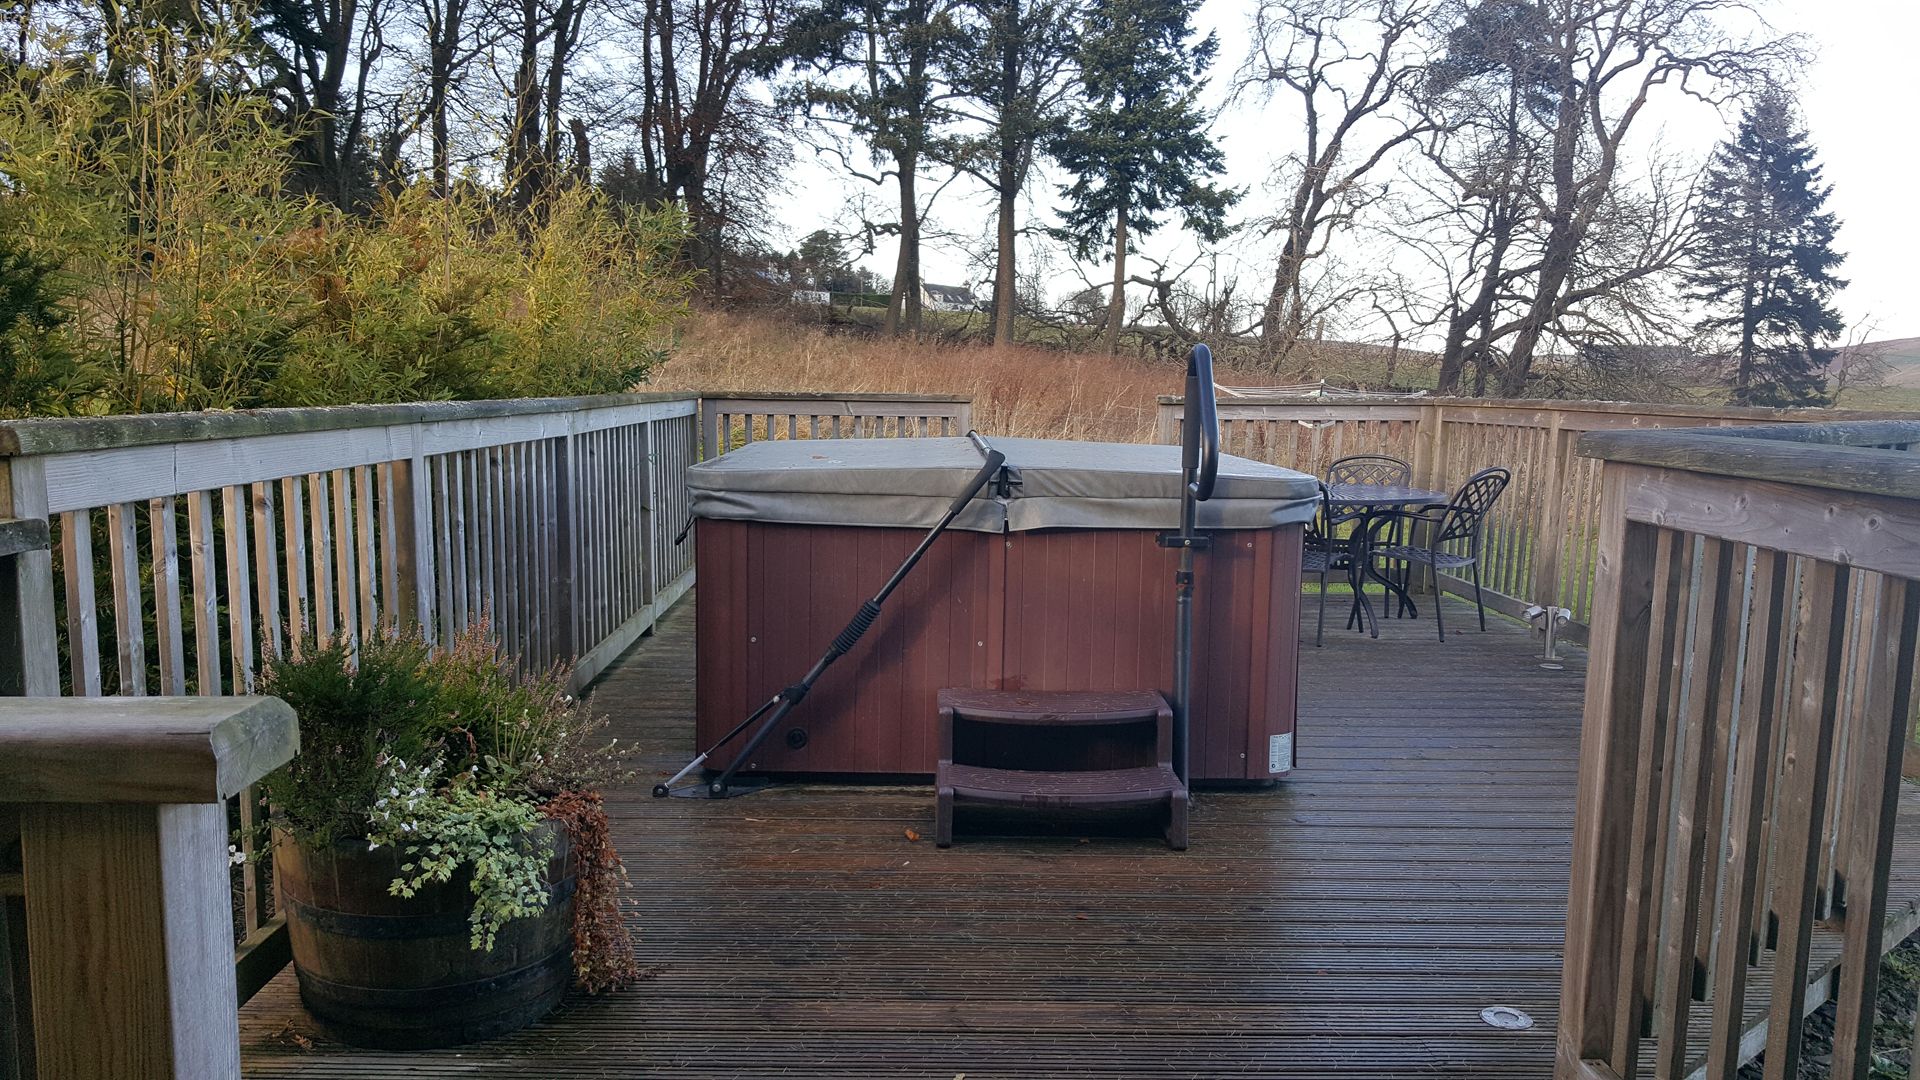 The hot tub at The Ramsay Airhouses Luxury Self Catering Lodges in Scottish Borders